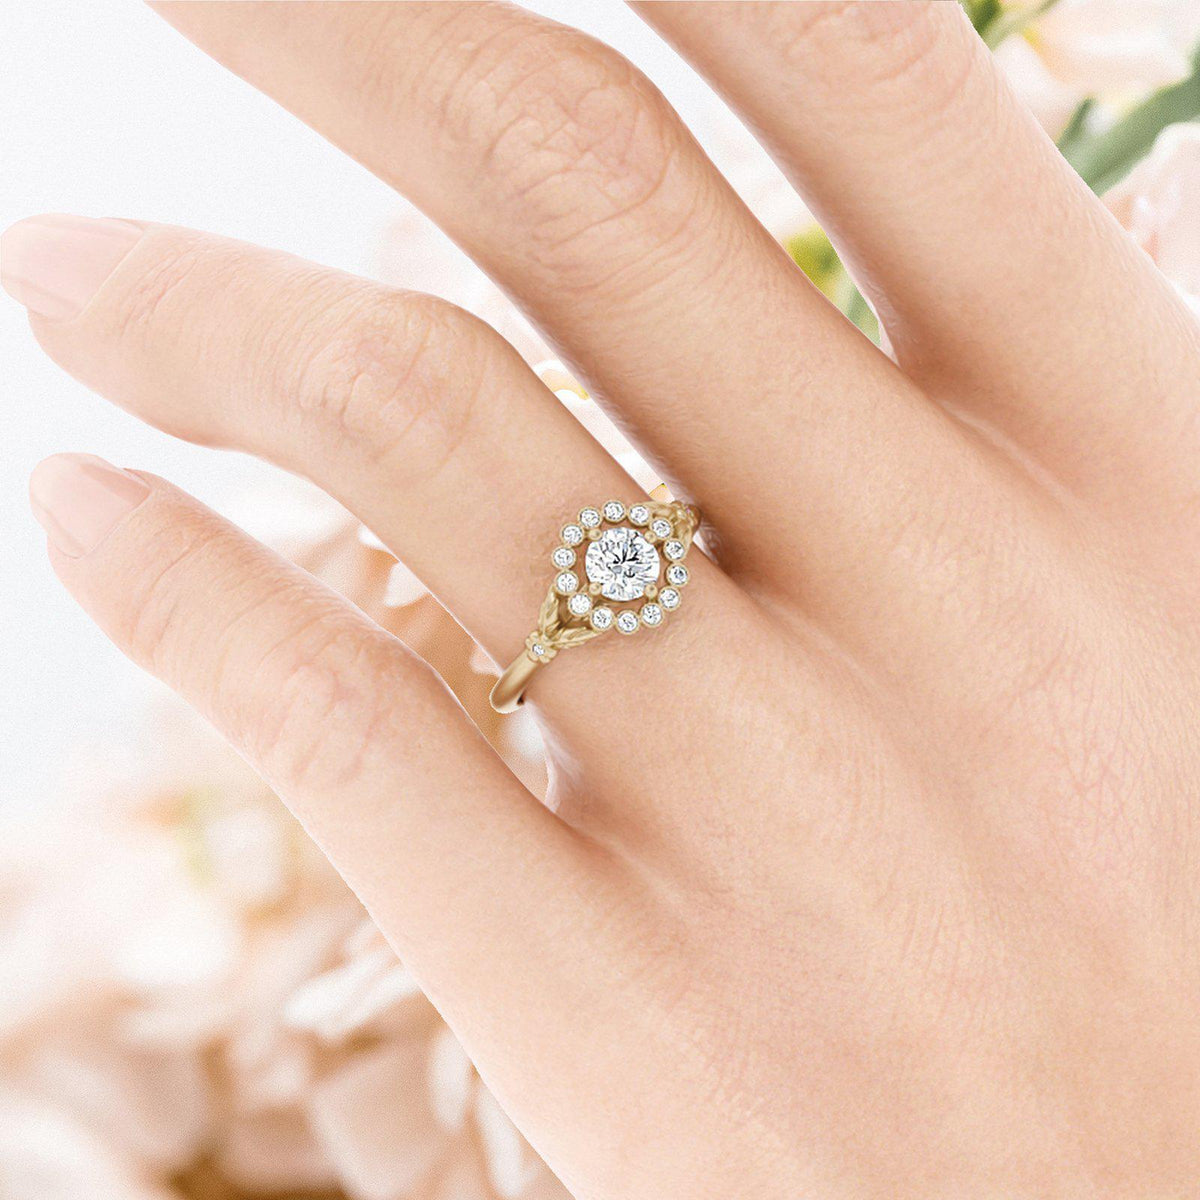 Gwendolyn Diamond Halo Ring on hand